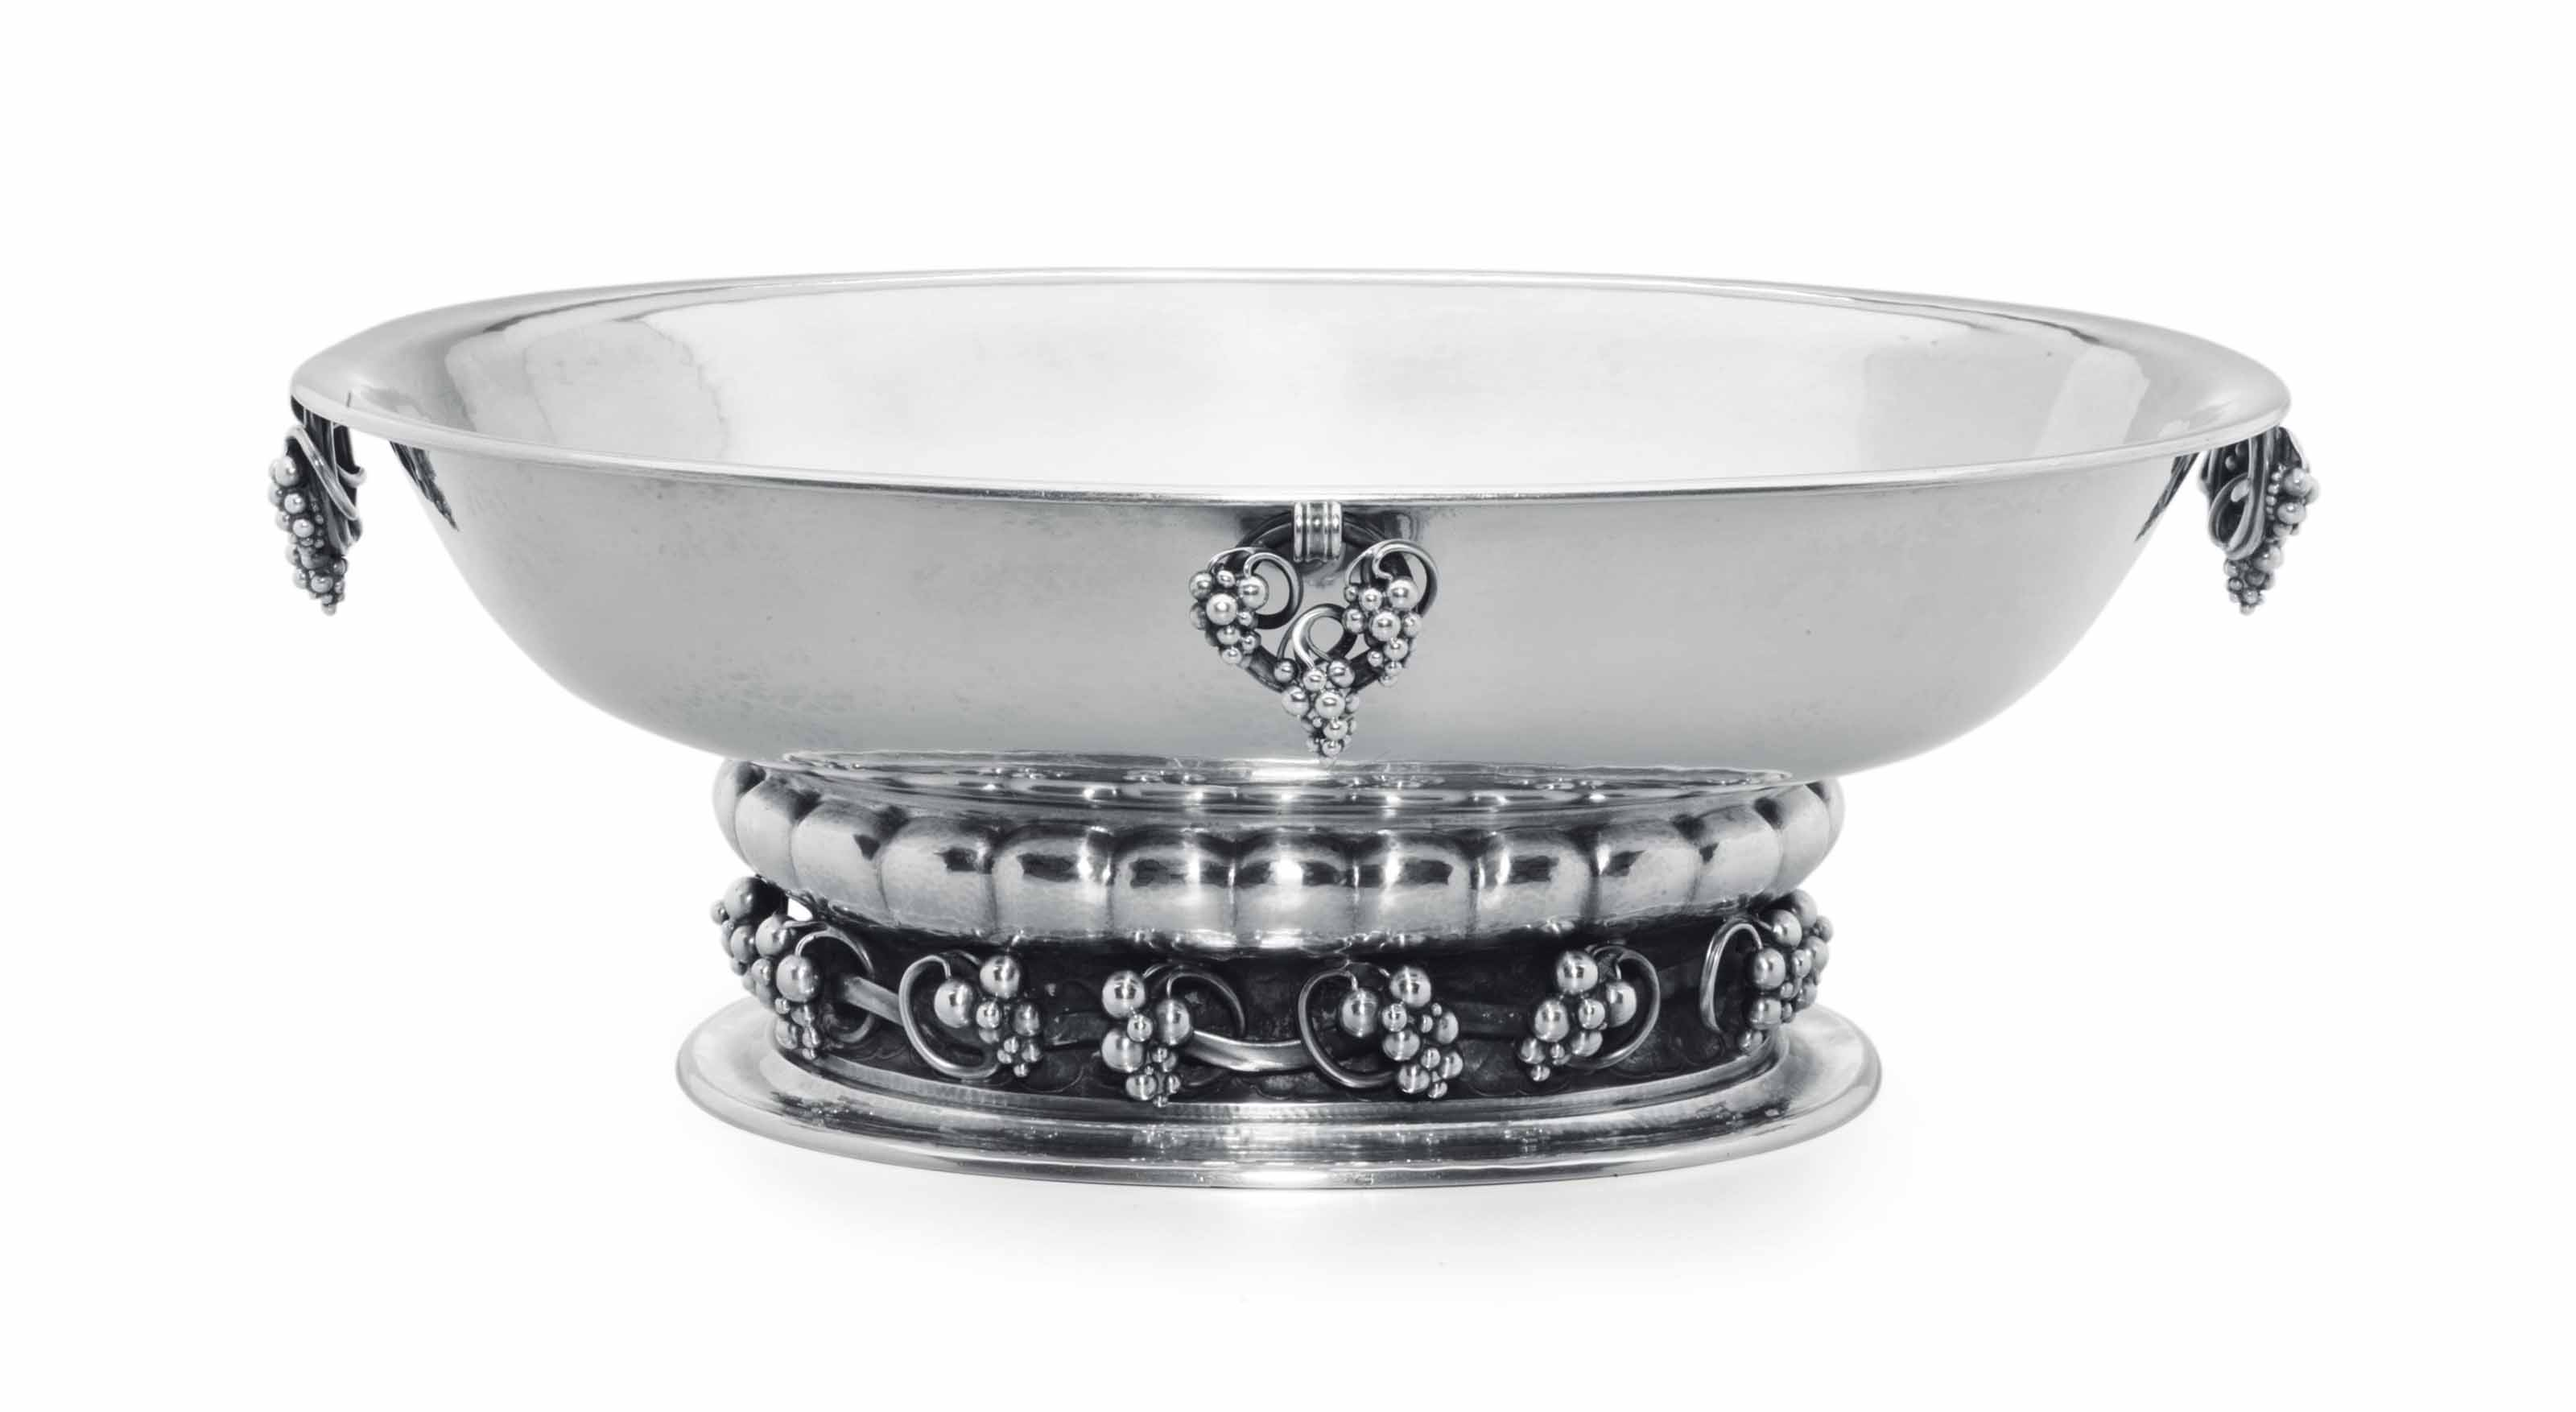 A DANISH SILVER CENTERPIECE BOWL, DESIGNED BY GEORG JENSEN